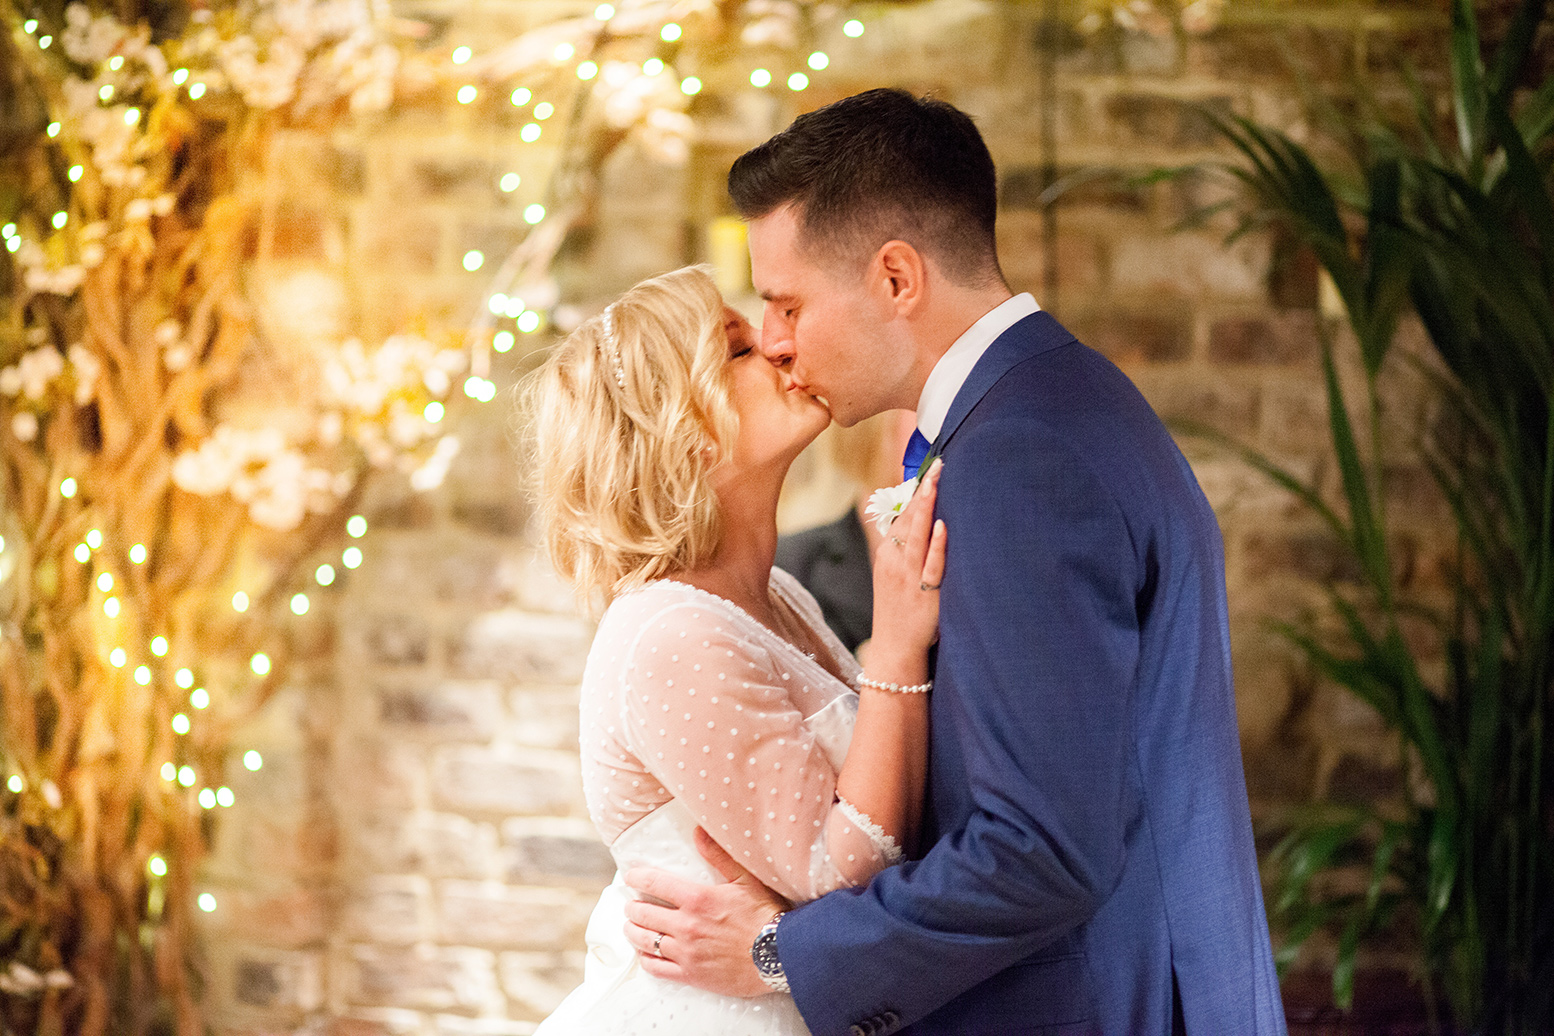 Groom and bride sharing a kiss